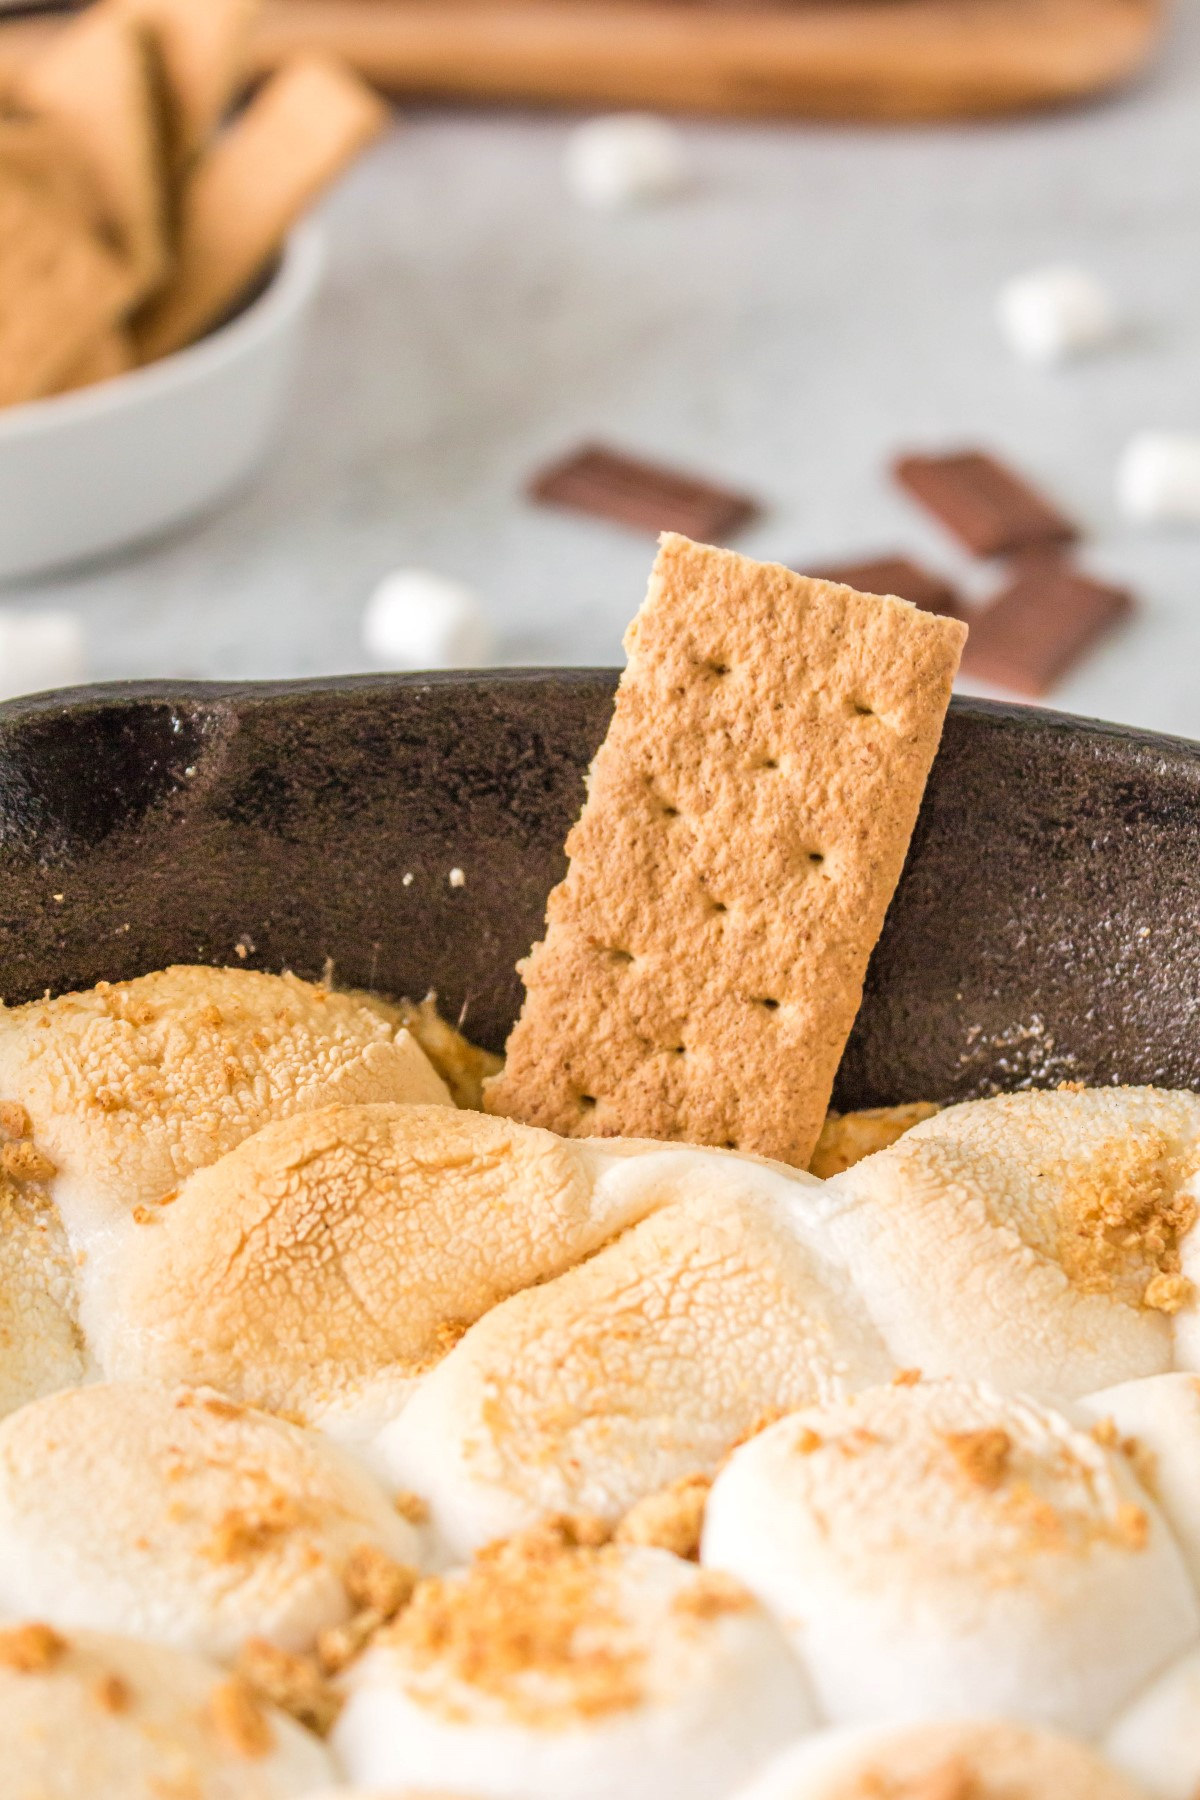 BBQ s'mores dip in a cast iron pan with a graham cracker stuck in the toasted marshmallows.